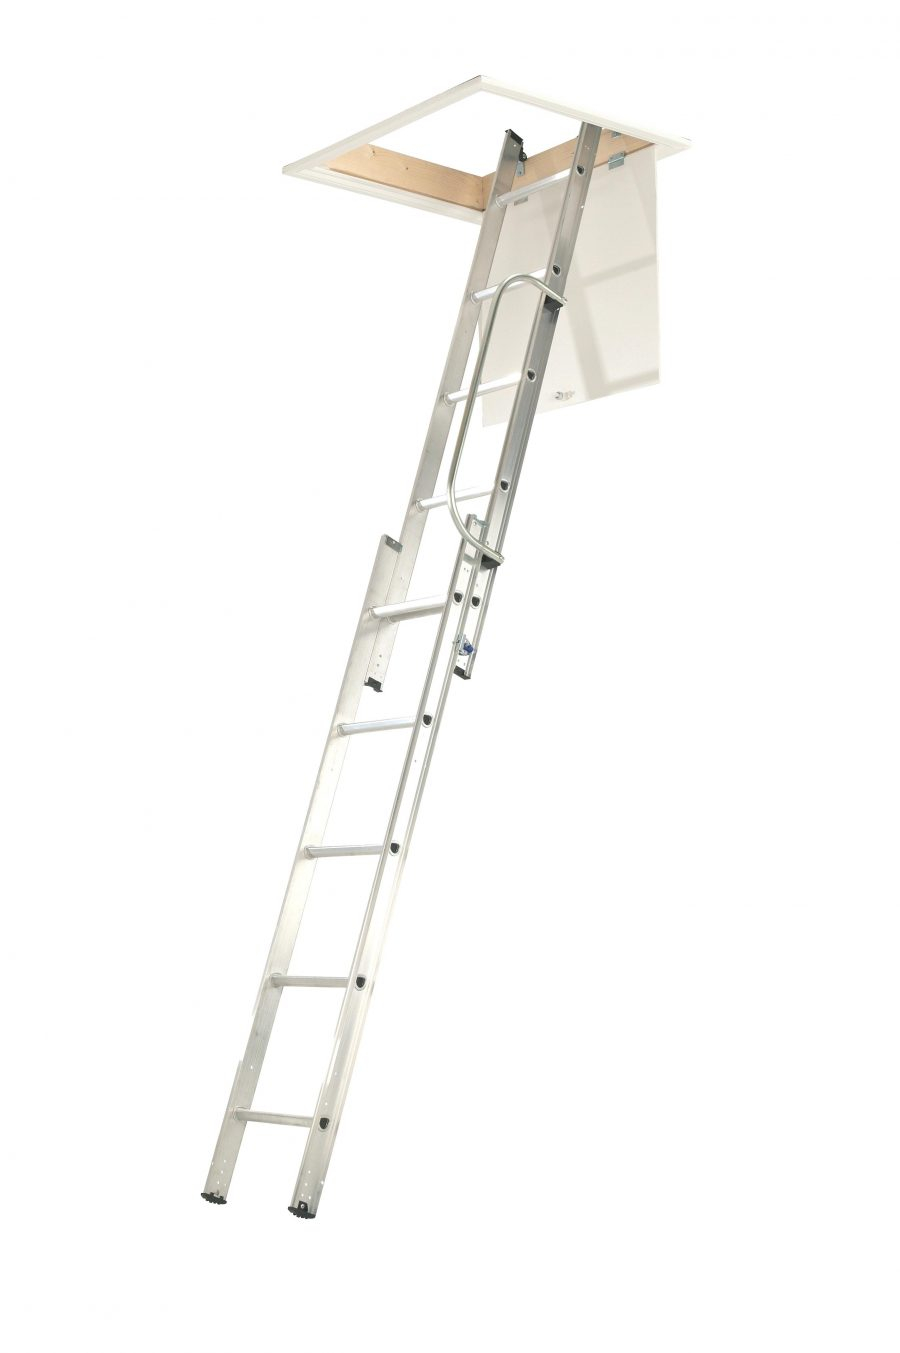 Werner S2208 Attic Ladder Parts Werner Attic Stairs S2208